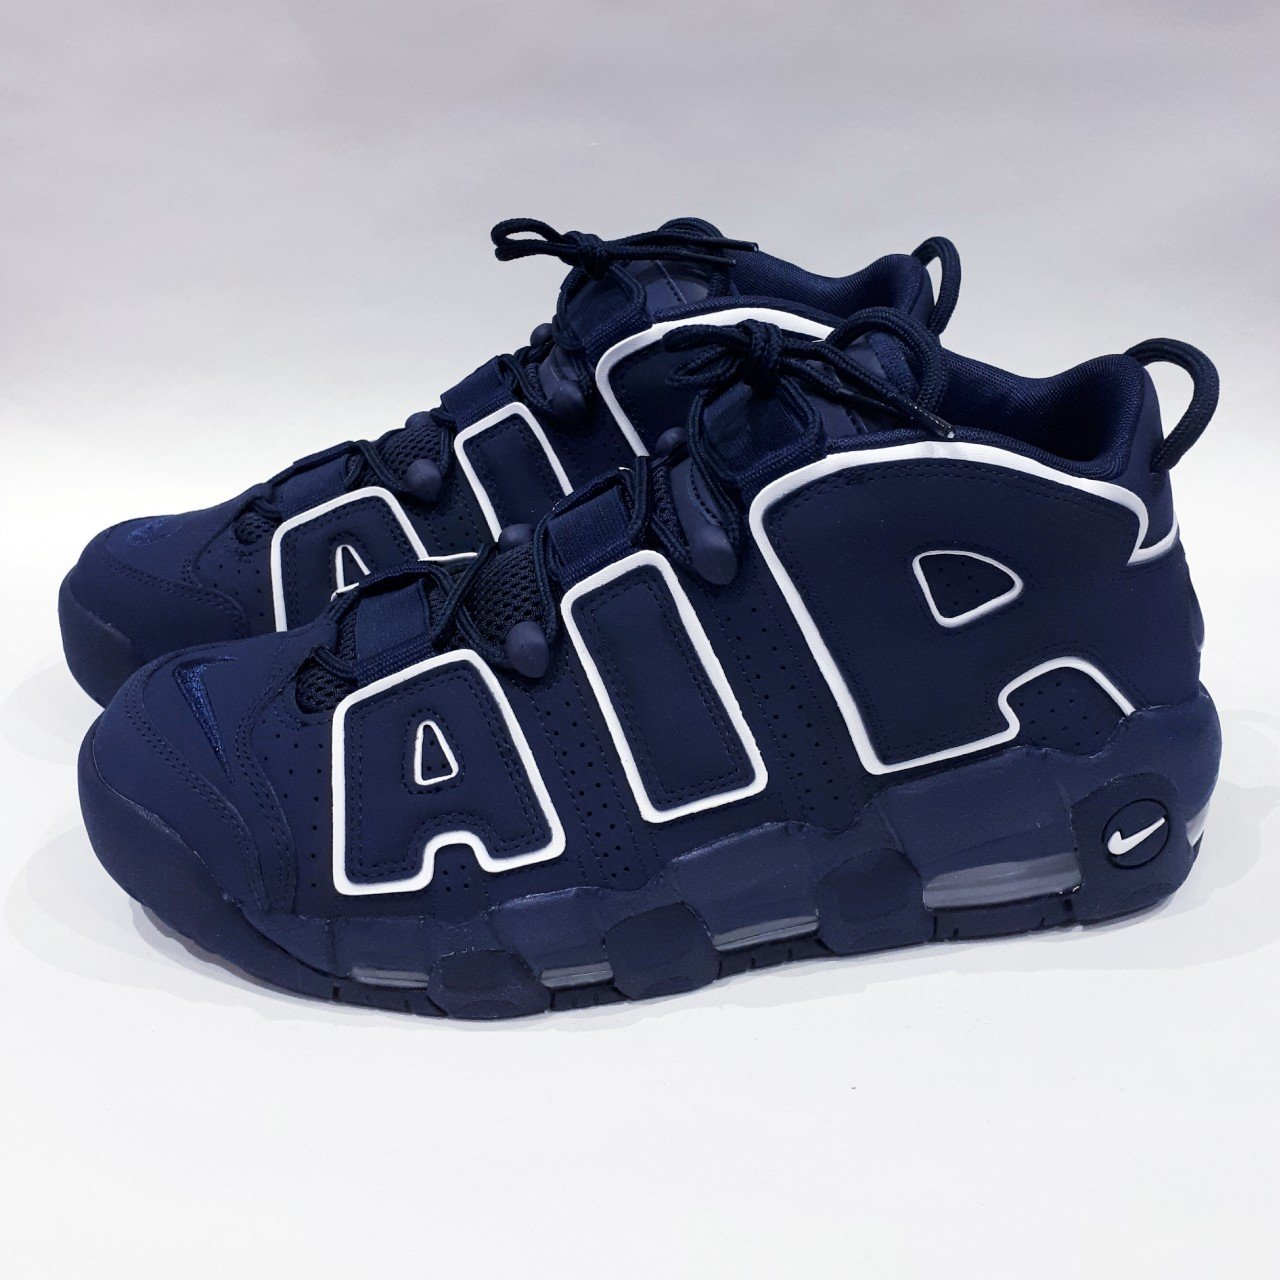 finest selection 0899d b6e36  trillkingcole. 3 months ago. Huddersfield, GB. Obsidian Obsidian-White Nike  Air More Uptempo  96. Size UK ...